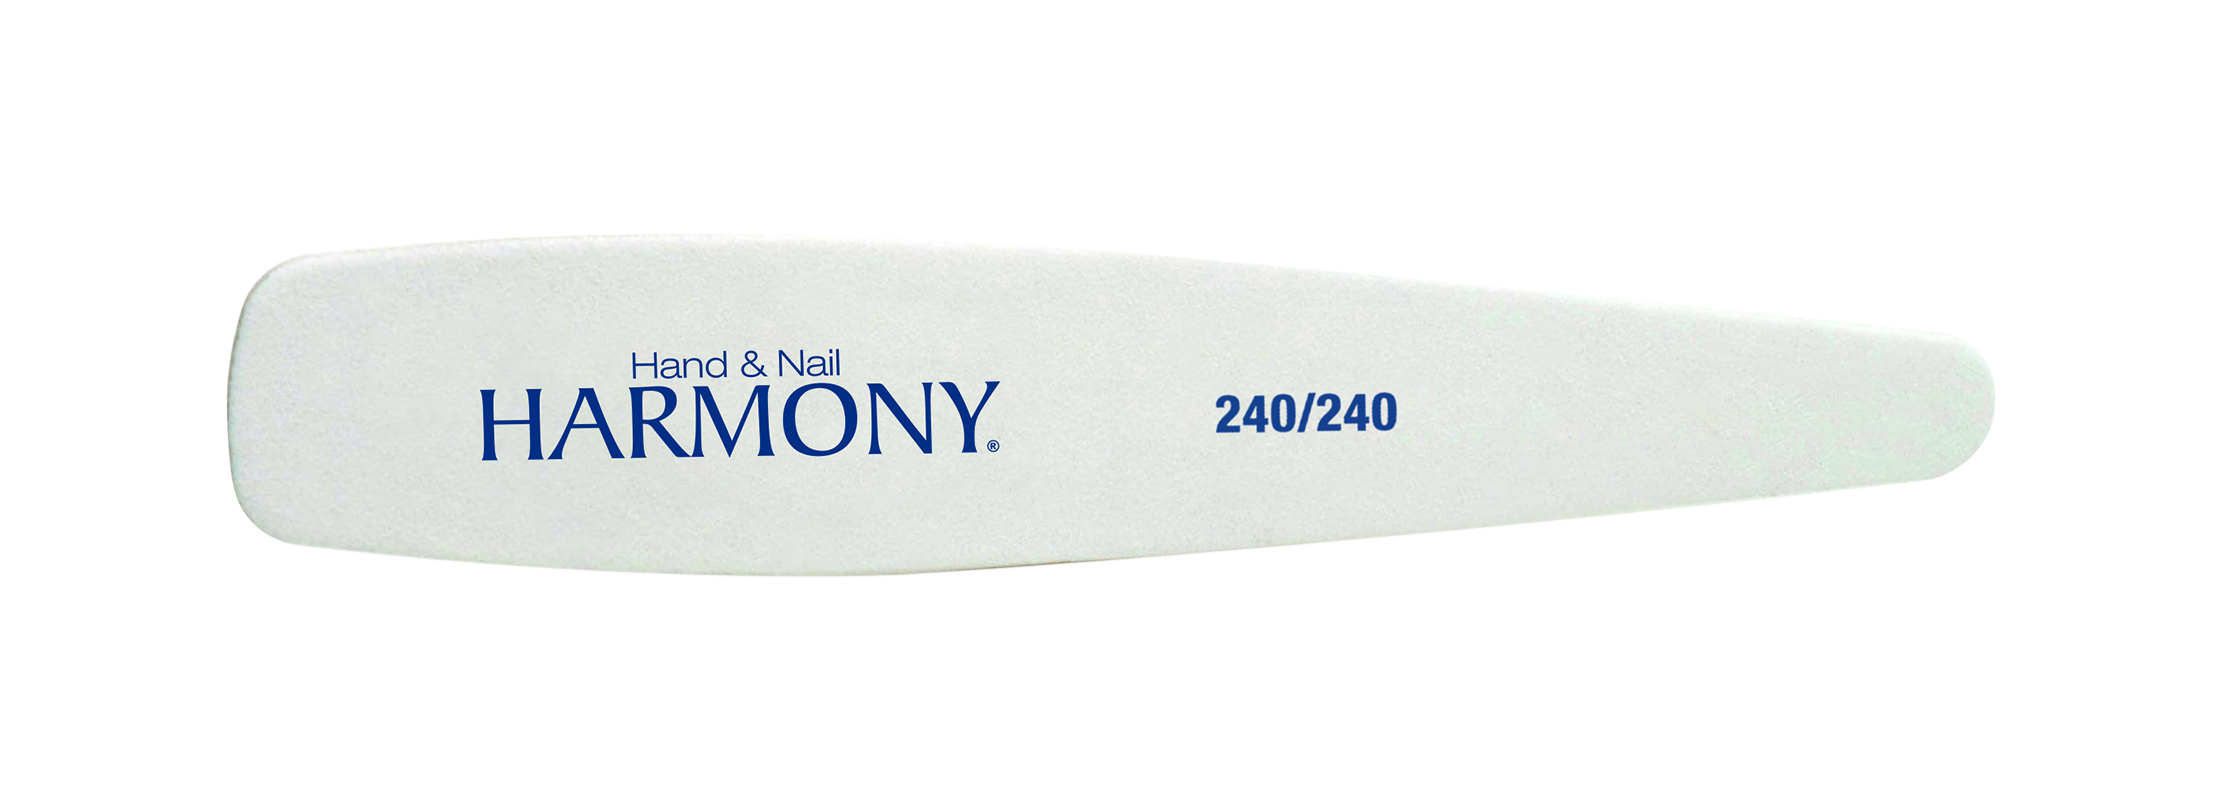 Hand & Nail Harmony 240 Thin Wooden File